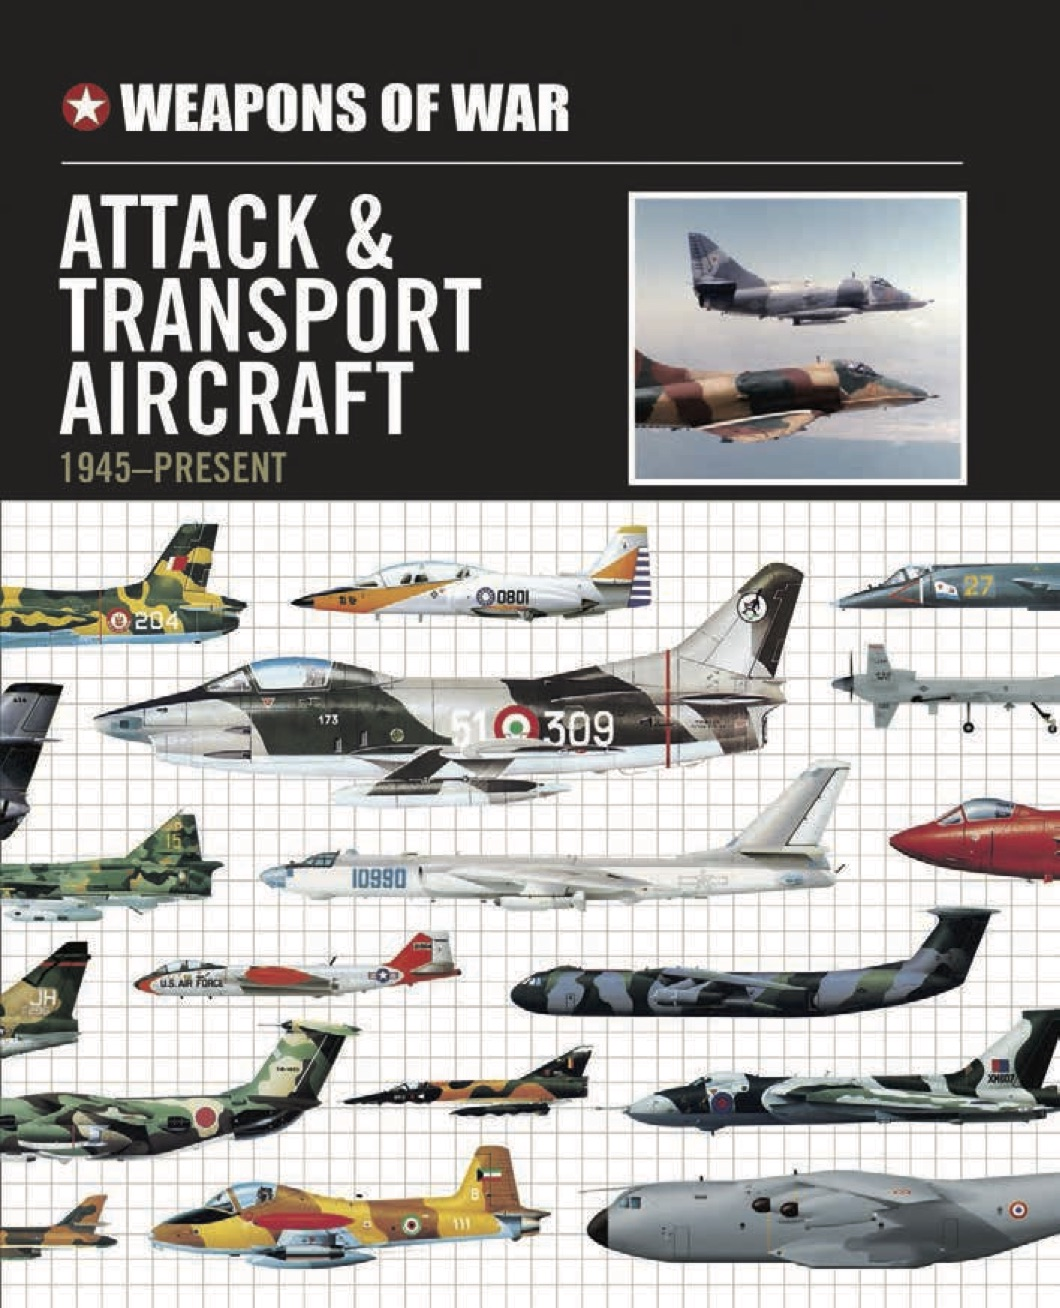 Aircraft & Transport Aircraft 1914-Present – Weapons of War